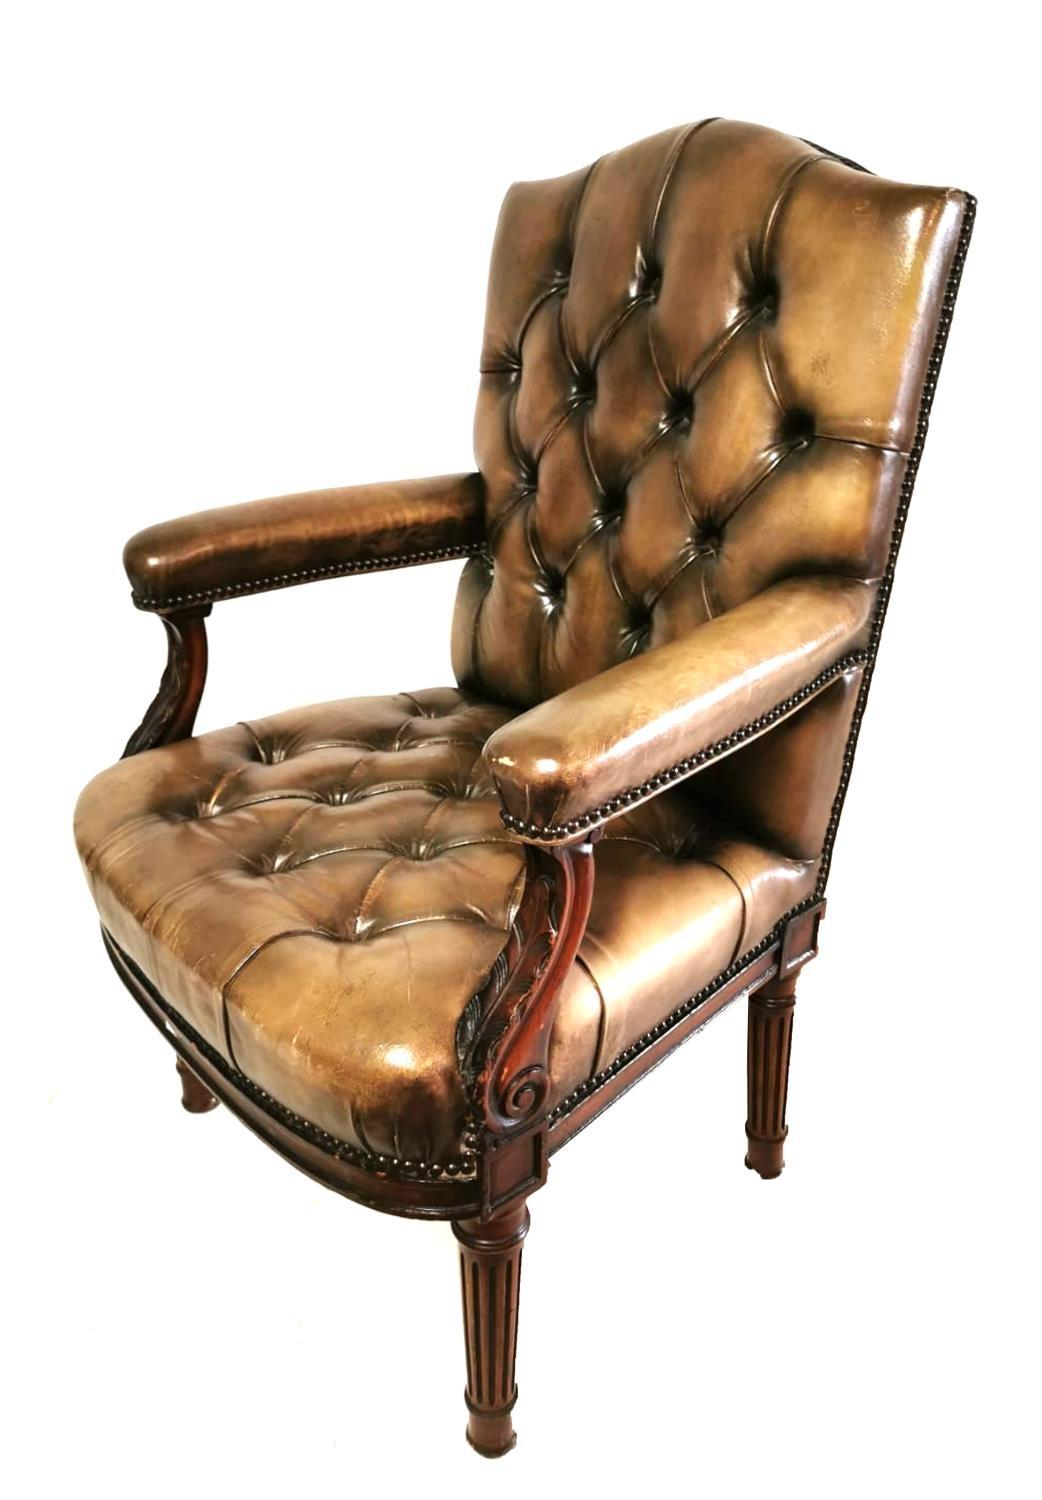 Lot 713 - A 19TH CENTURY MAHOGANY OPEN ARMCHAIR Upholstered in a green button back leather, with acanthus